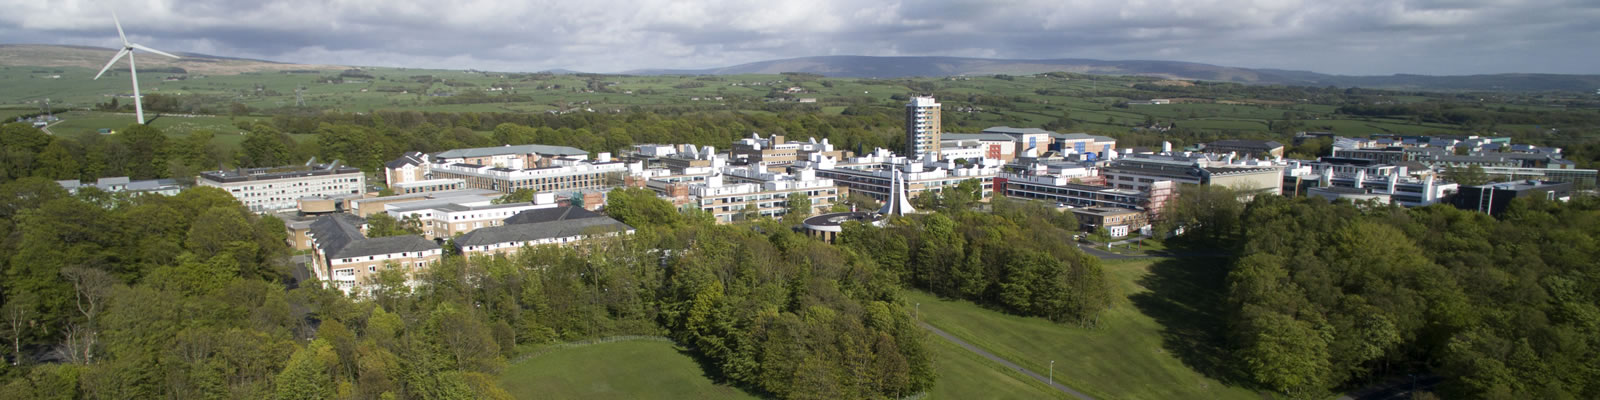 Aerial photograph of Bailrigg Campus